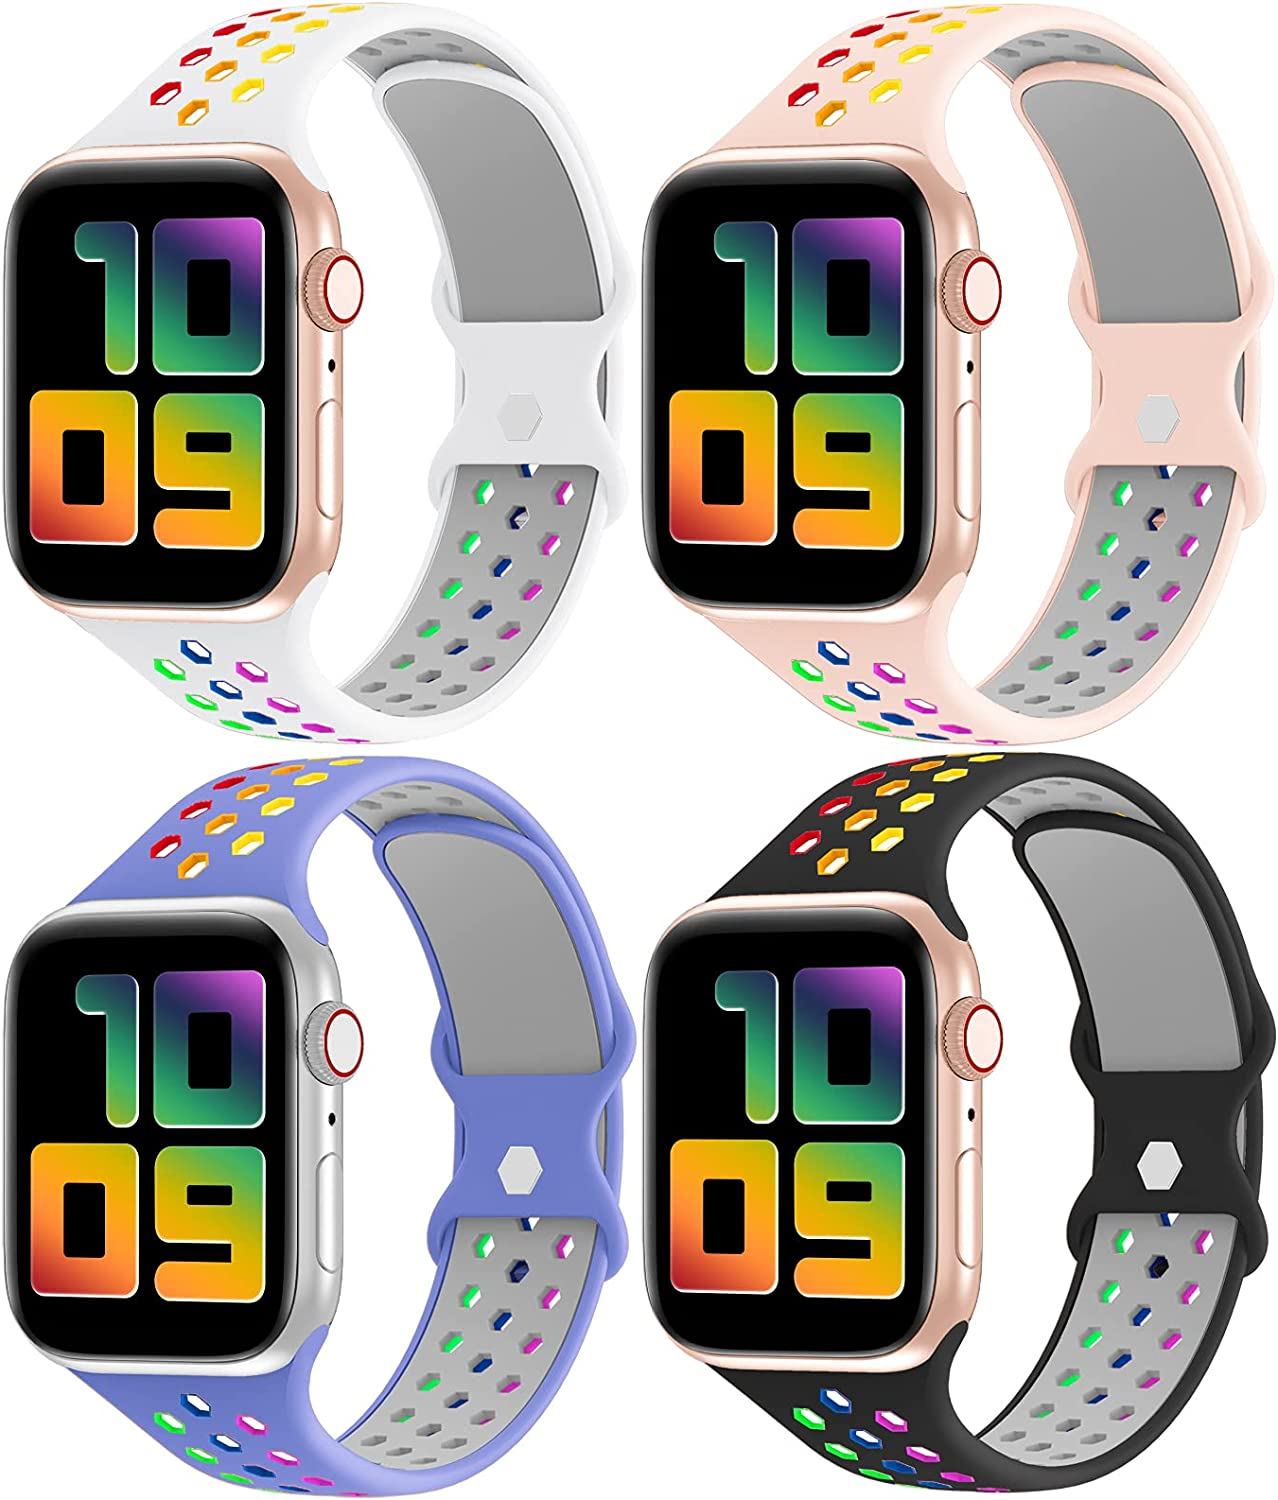 YAXIN 4 Pack Bands Compatible with Apple Watch Bands 44mm 42mm 40mm 38mm Women Men,Breathable Soft Silicone Sport Band Replacement Strap for iWatch Series SE/6/5/4/3/2/1